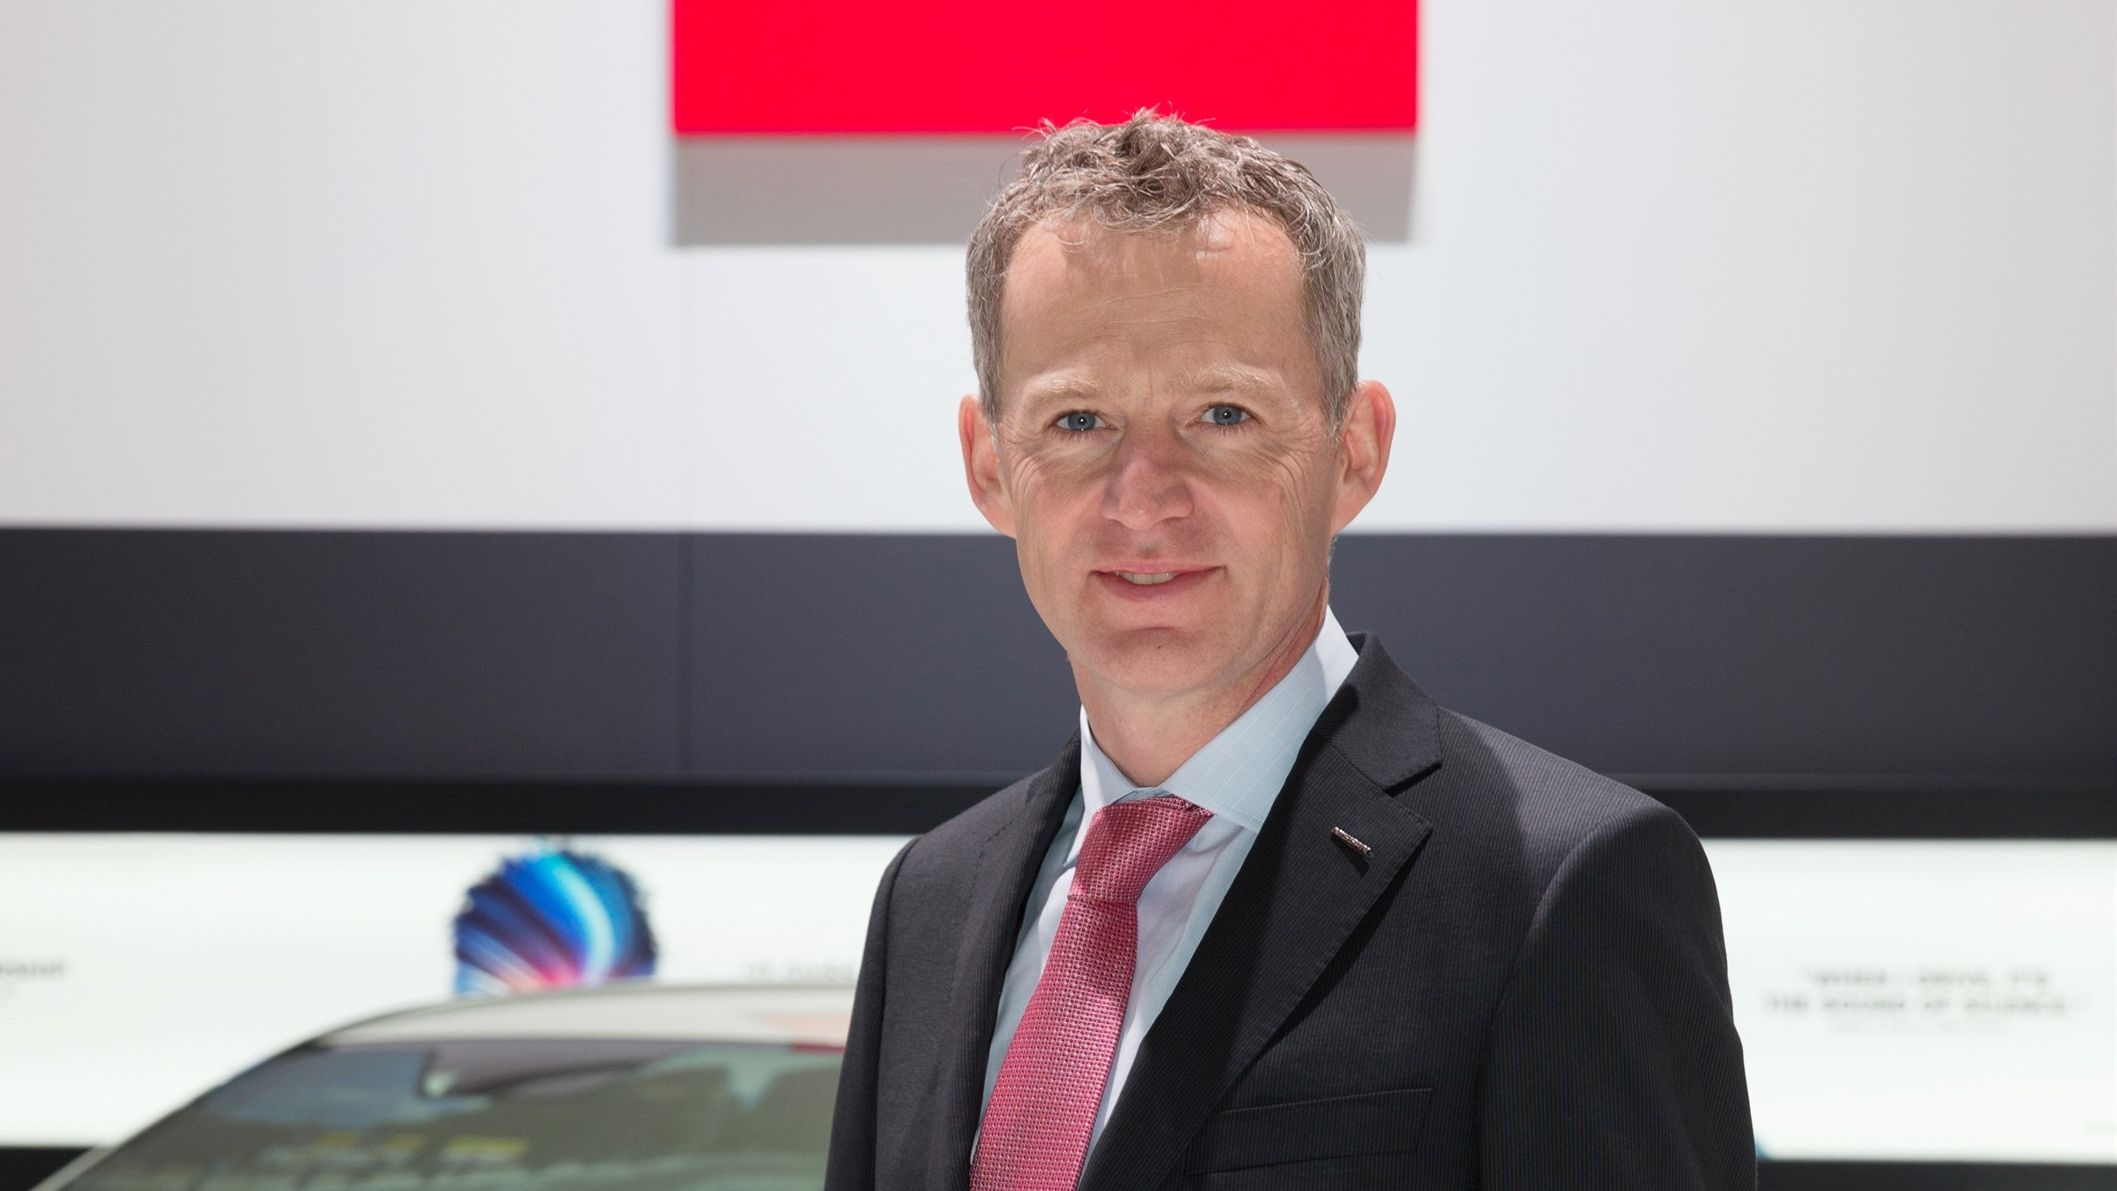 Roel de Vries ist Corporate Vice President, Global Head of Marketing and Brand Strategy bei Nissan